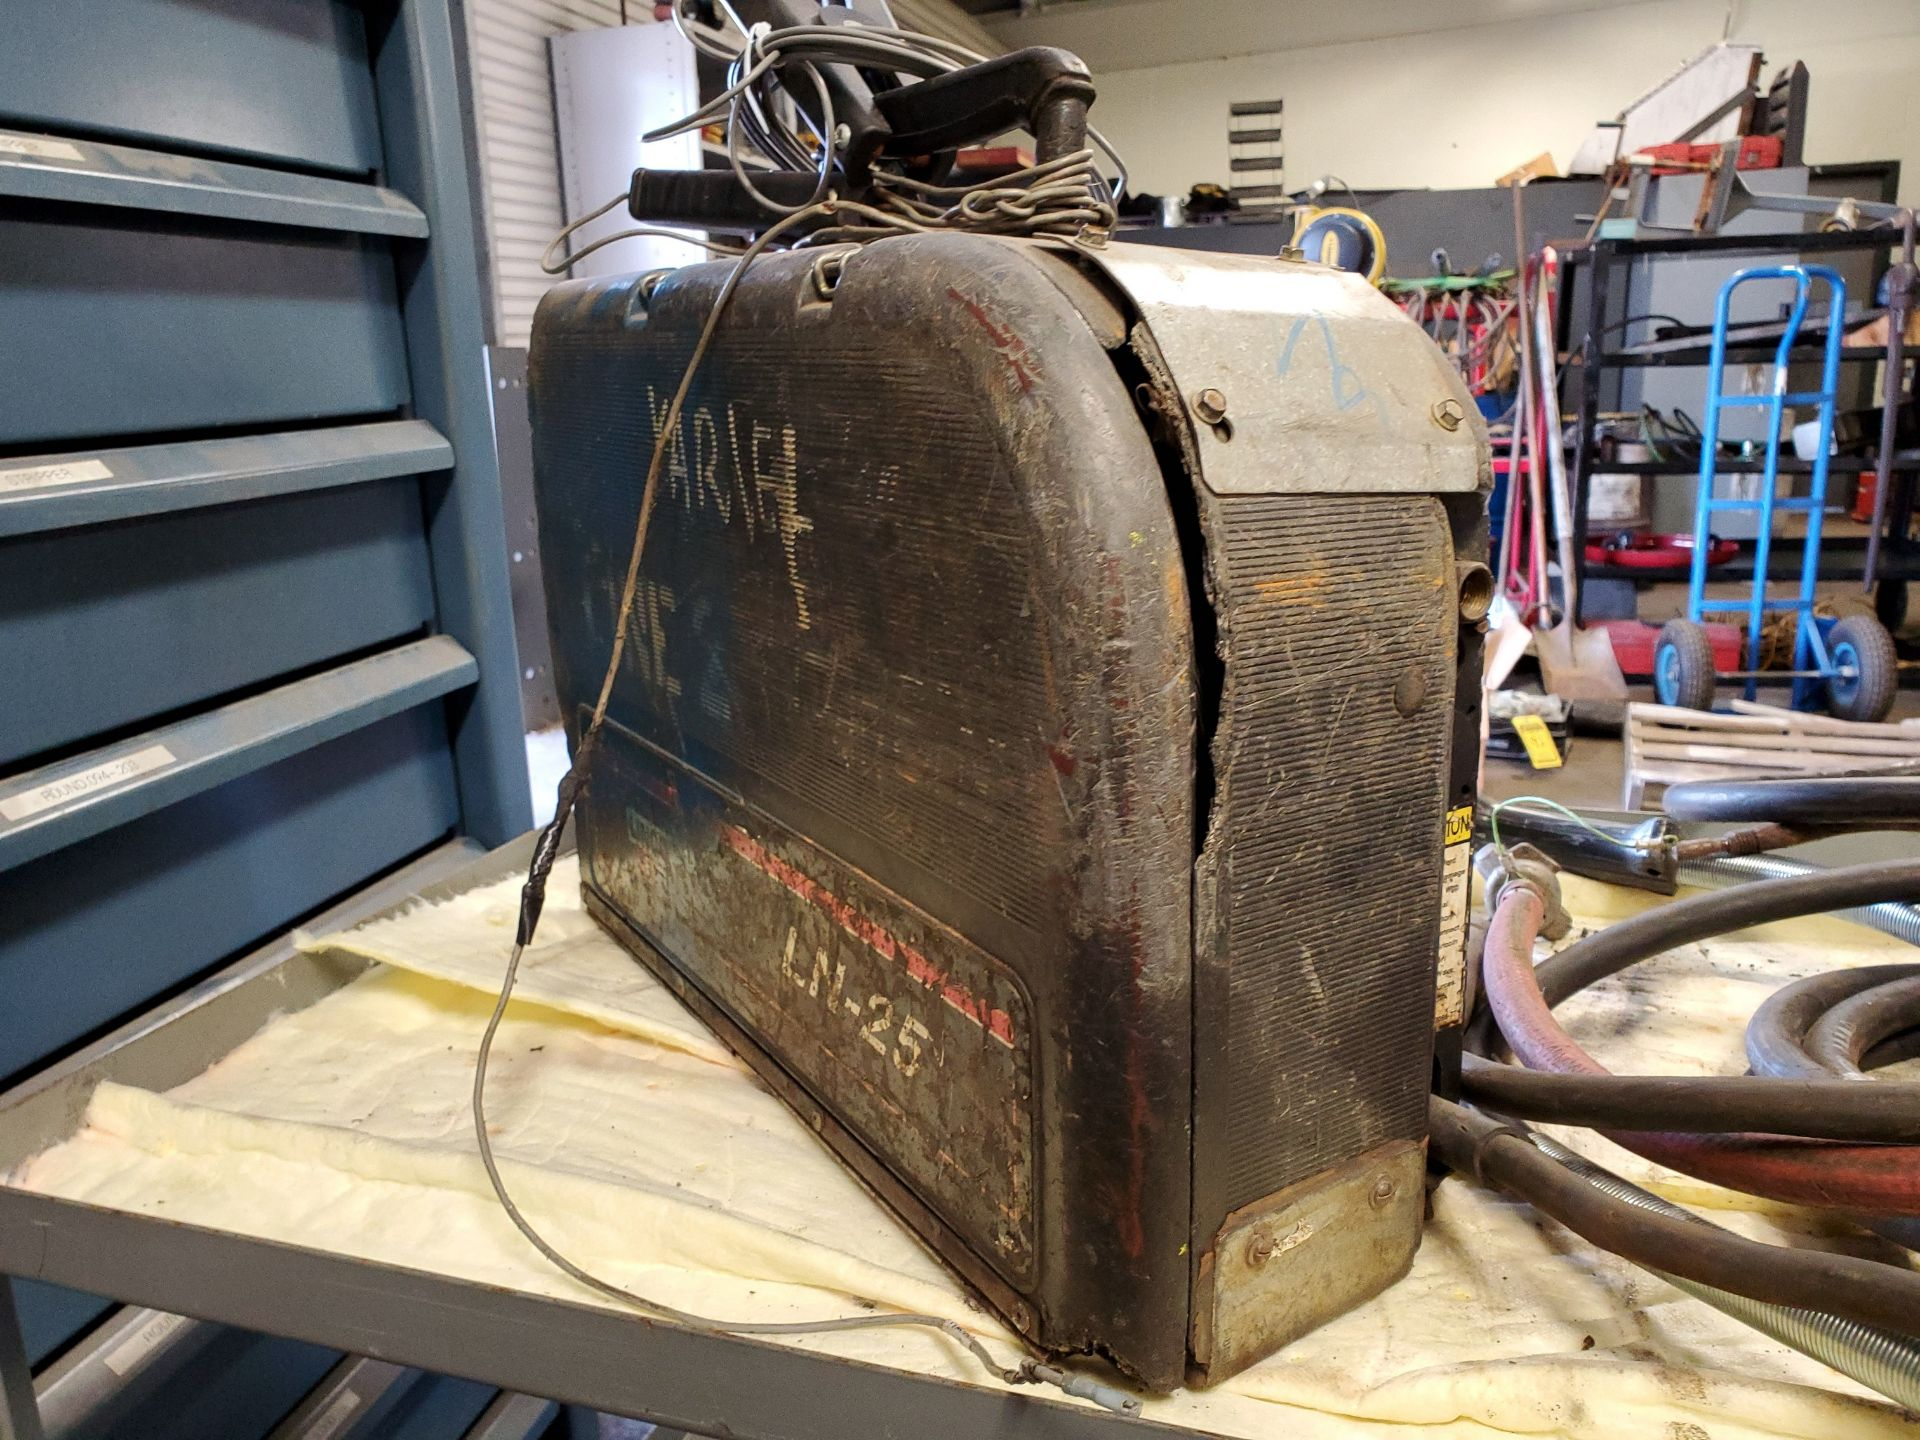 Lot 18 - MILLER AUTO INVISION II WELDING POWER SOURCE W/ LINCOLN ELECTRIC LN-25 WIRE WELDER W/ LEADS, S/N